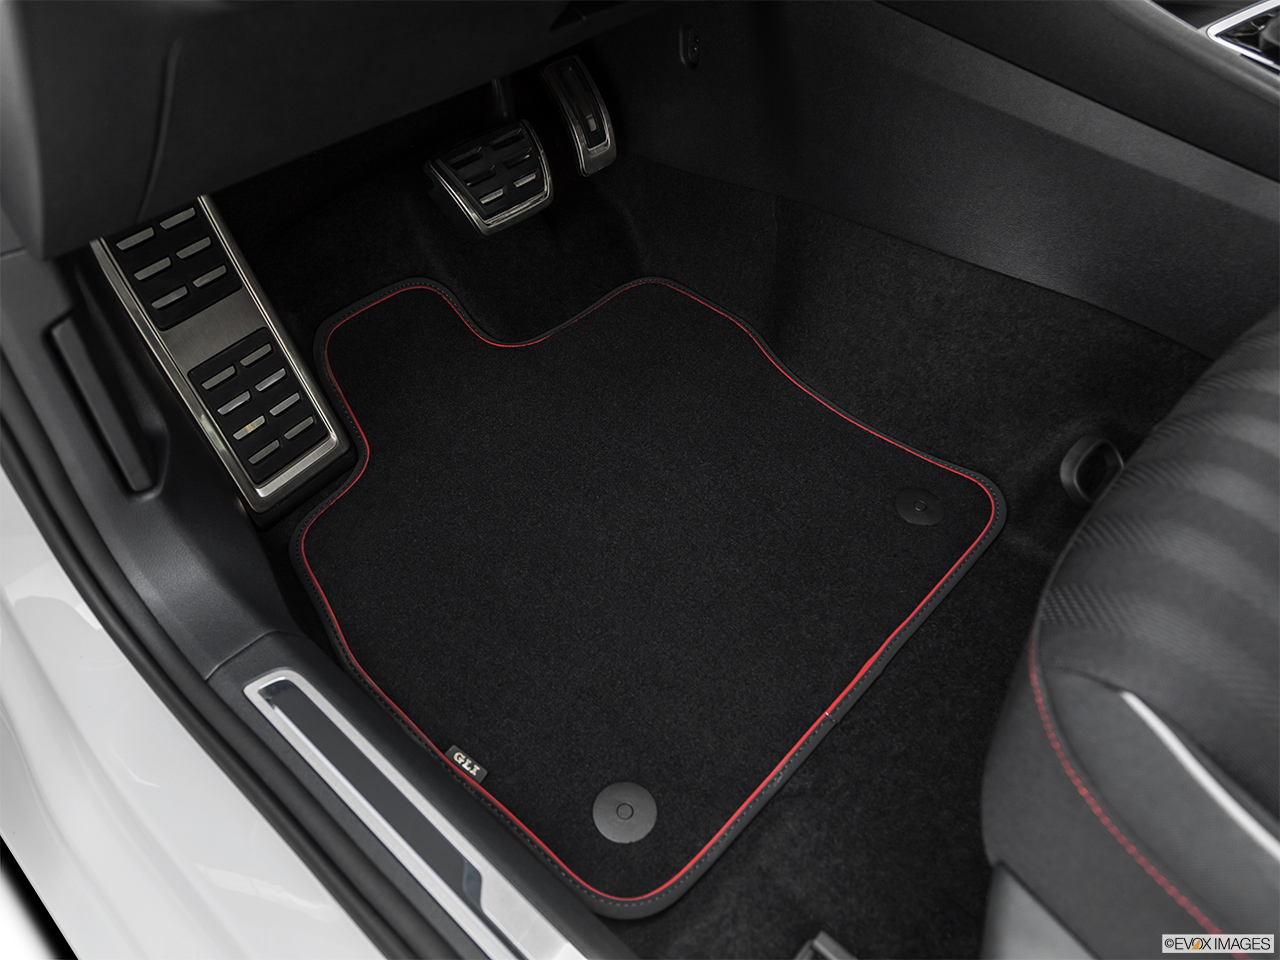 2019 Volkswagen Jetta GLI S Driver's floor mat and pedals. Mid-seat level from outside looking in.